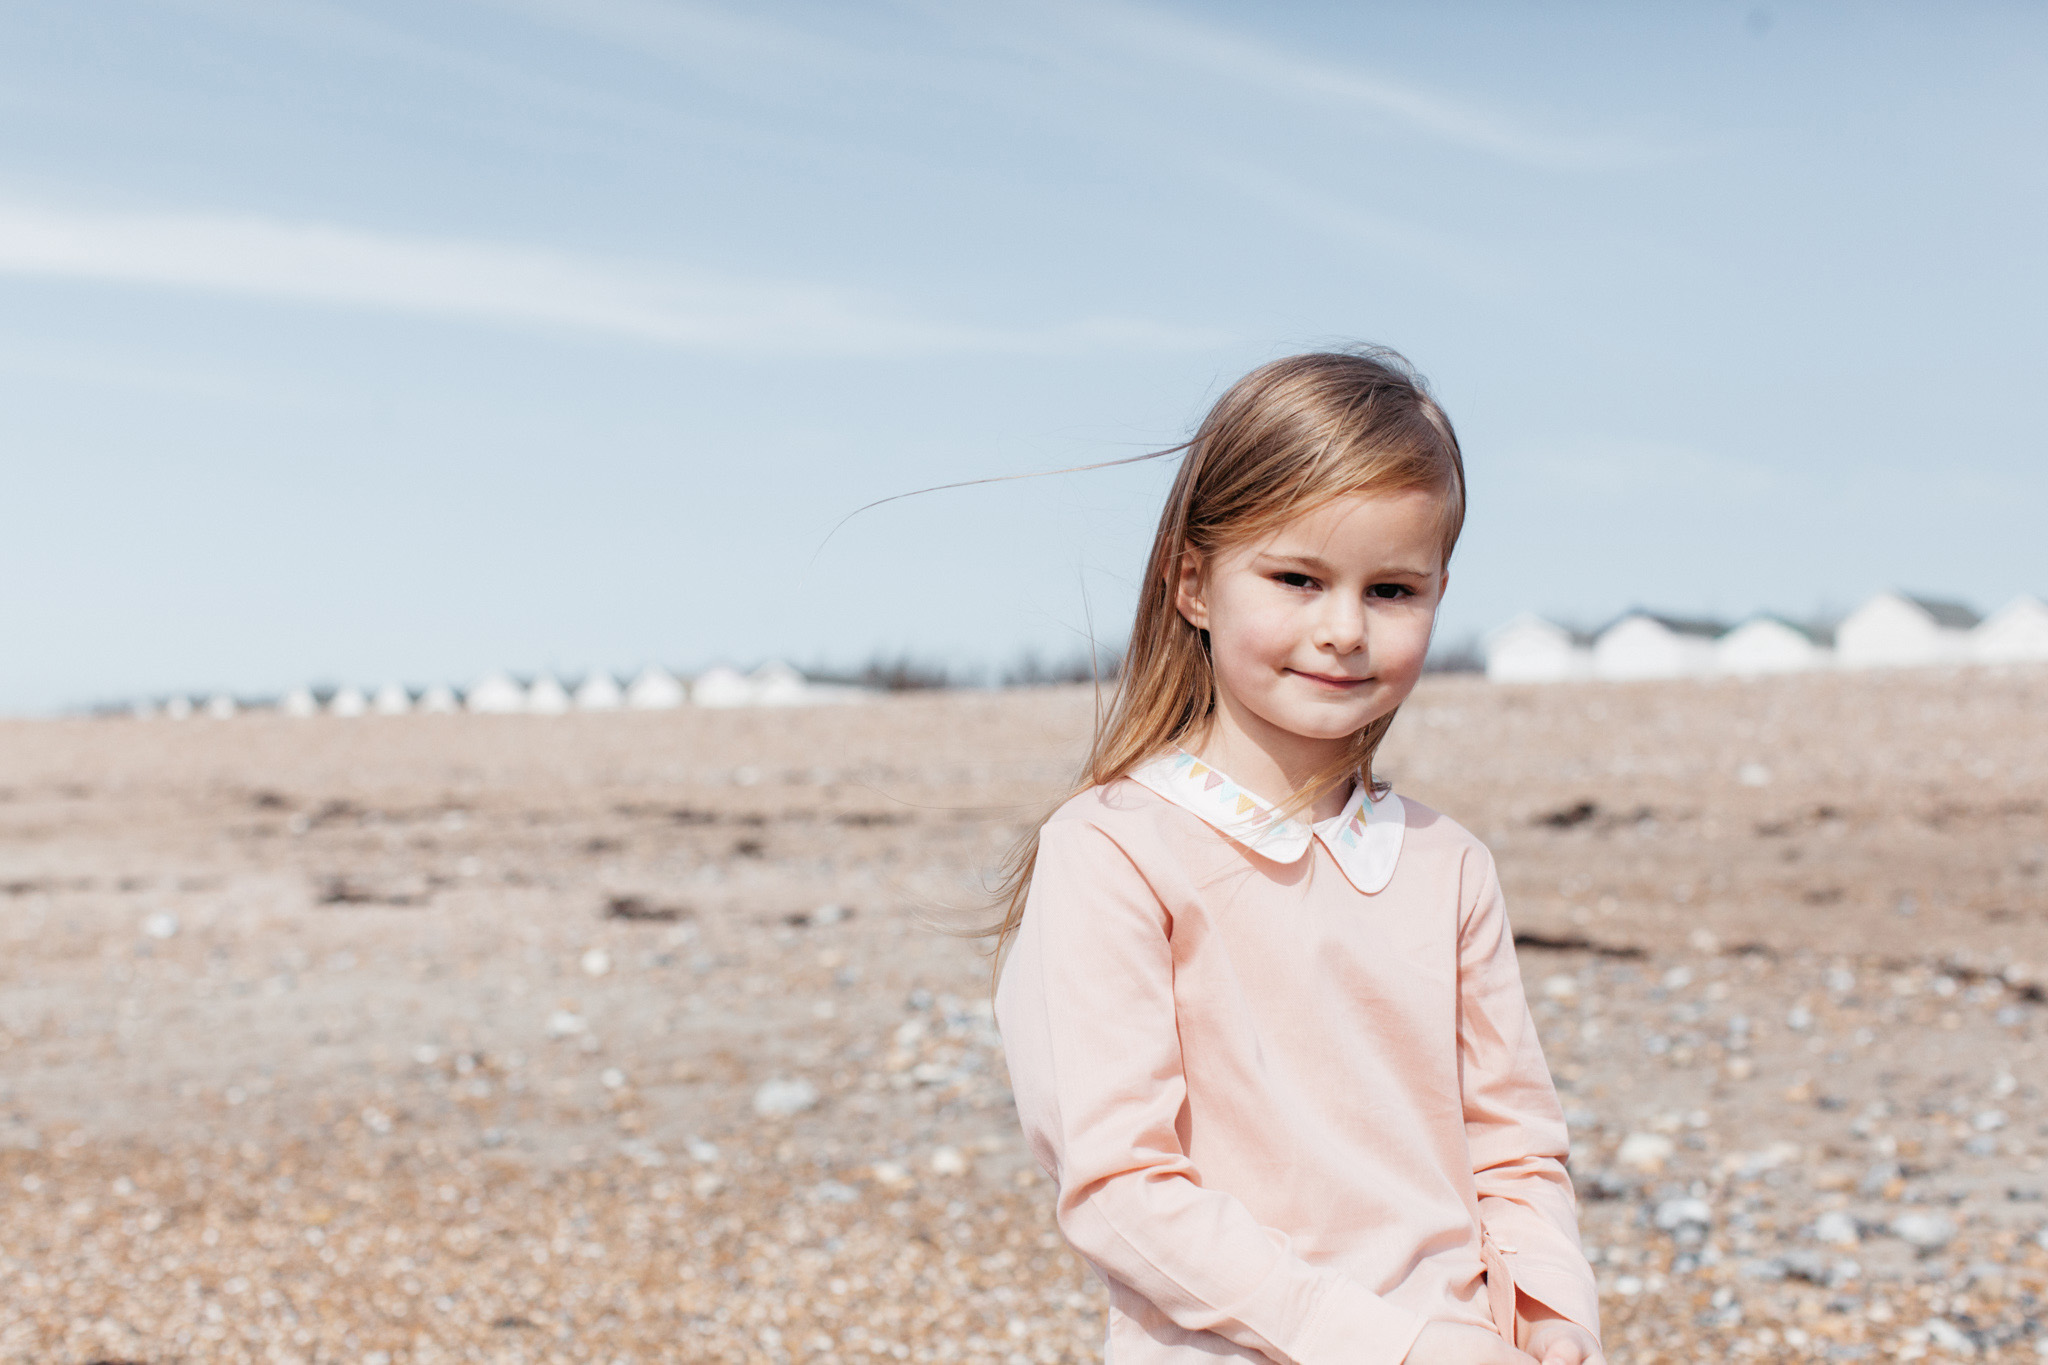 Children's clothing lookbook photography for Happyology by lifestyle photographer Emma Gutteridge.